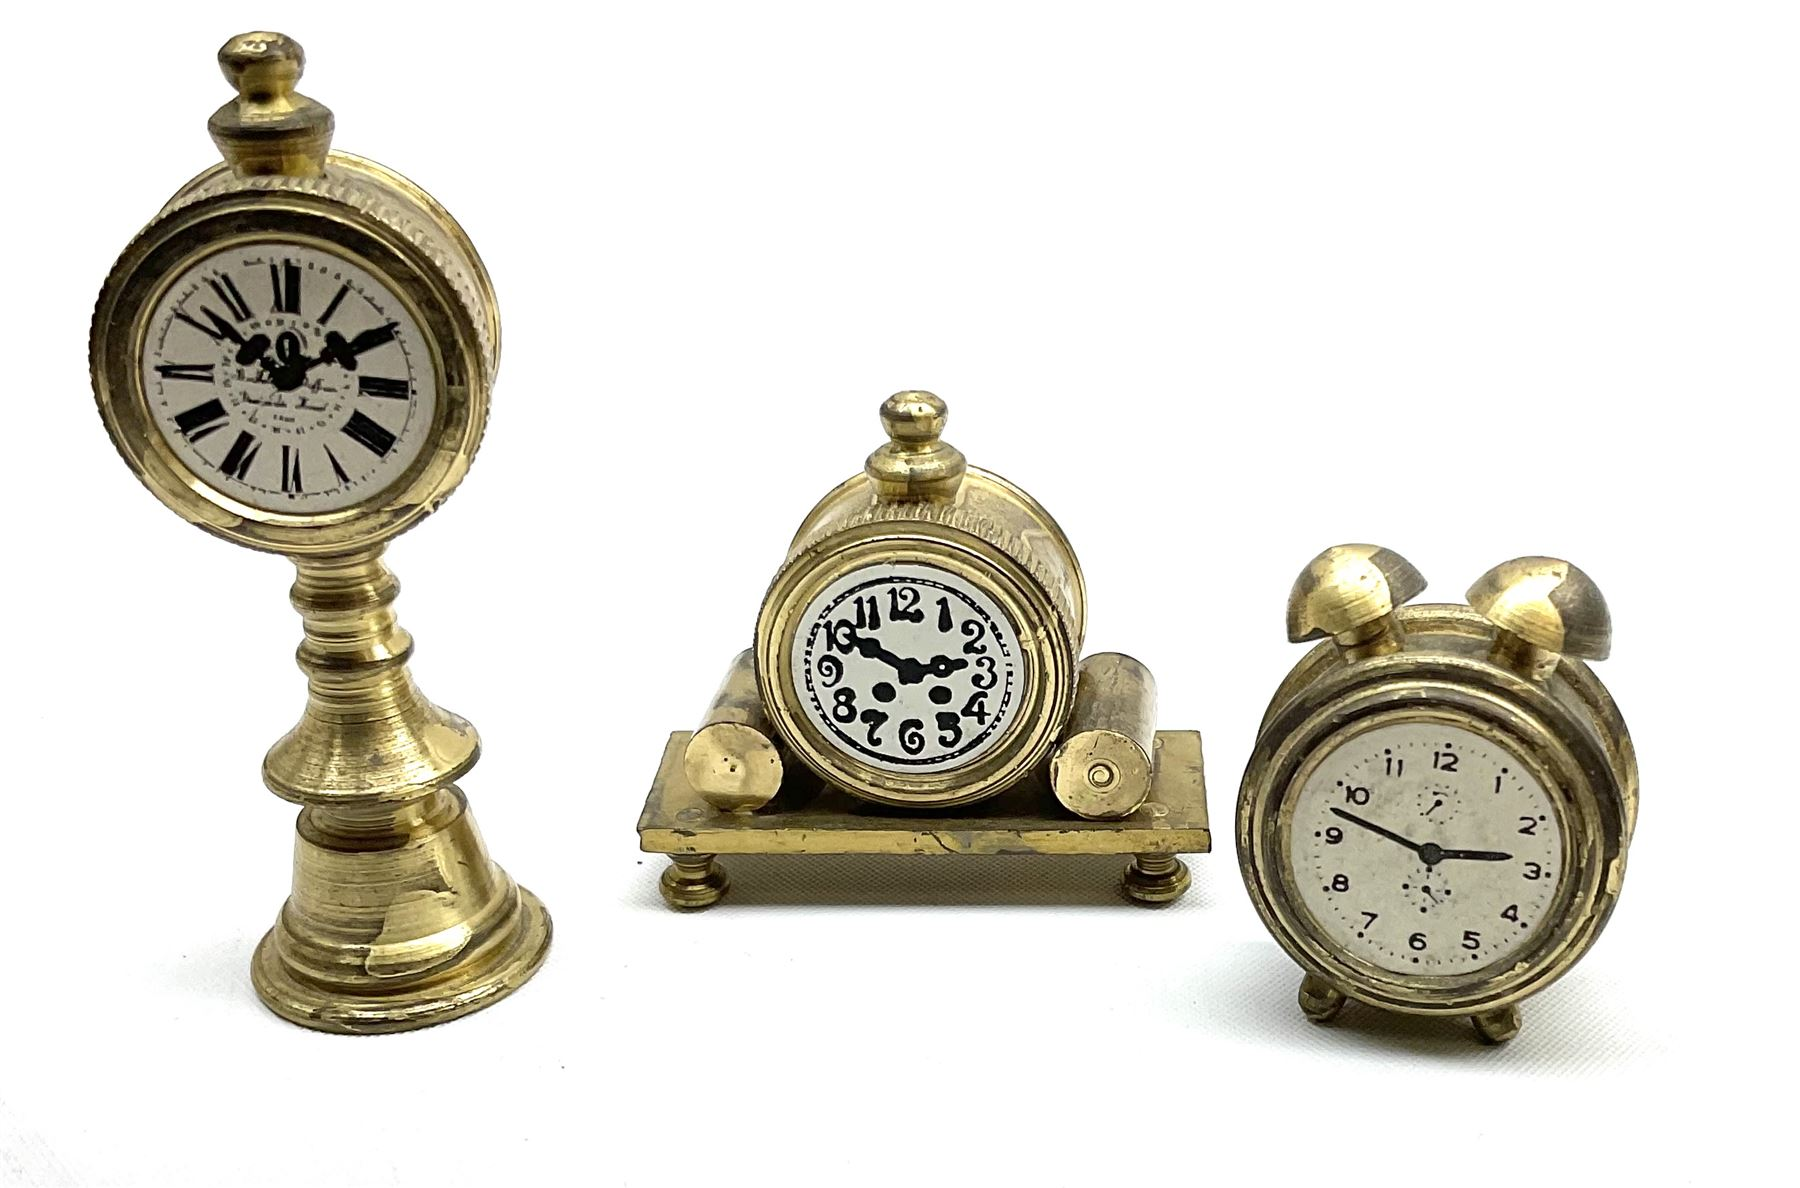 Over one-hundred various scale miniature brass ornaments suitable for decorating doll's houses inclu - Image 7 of 10